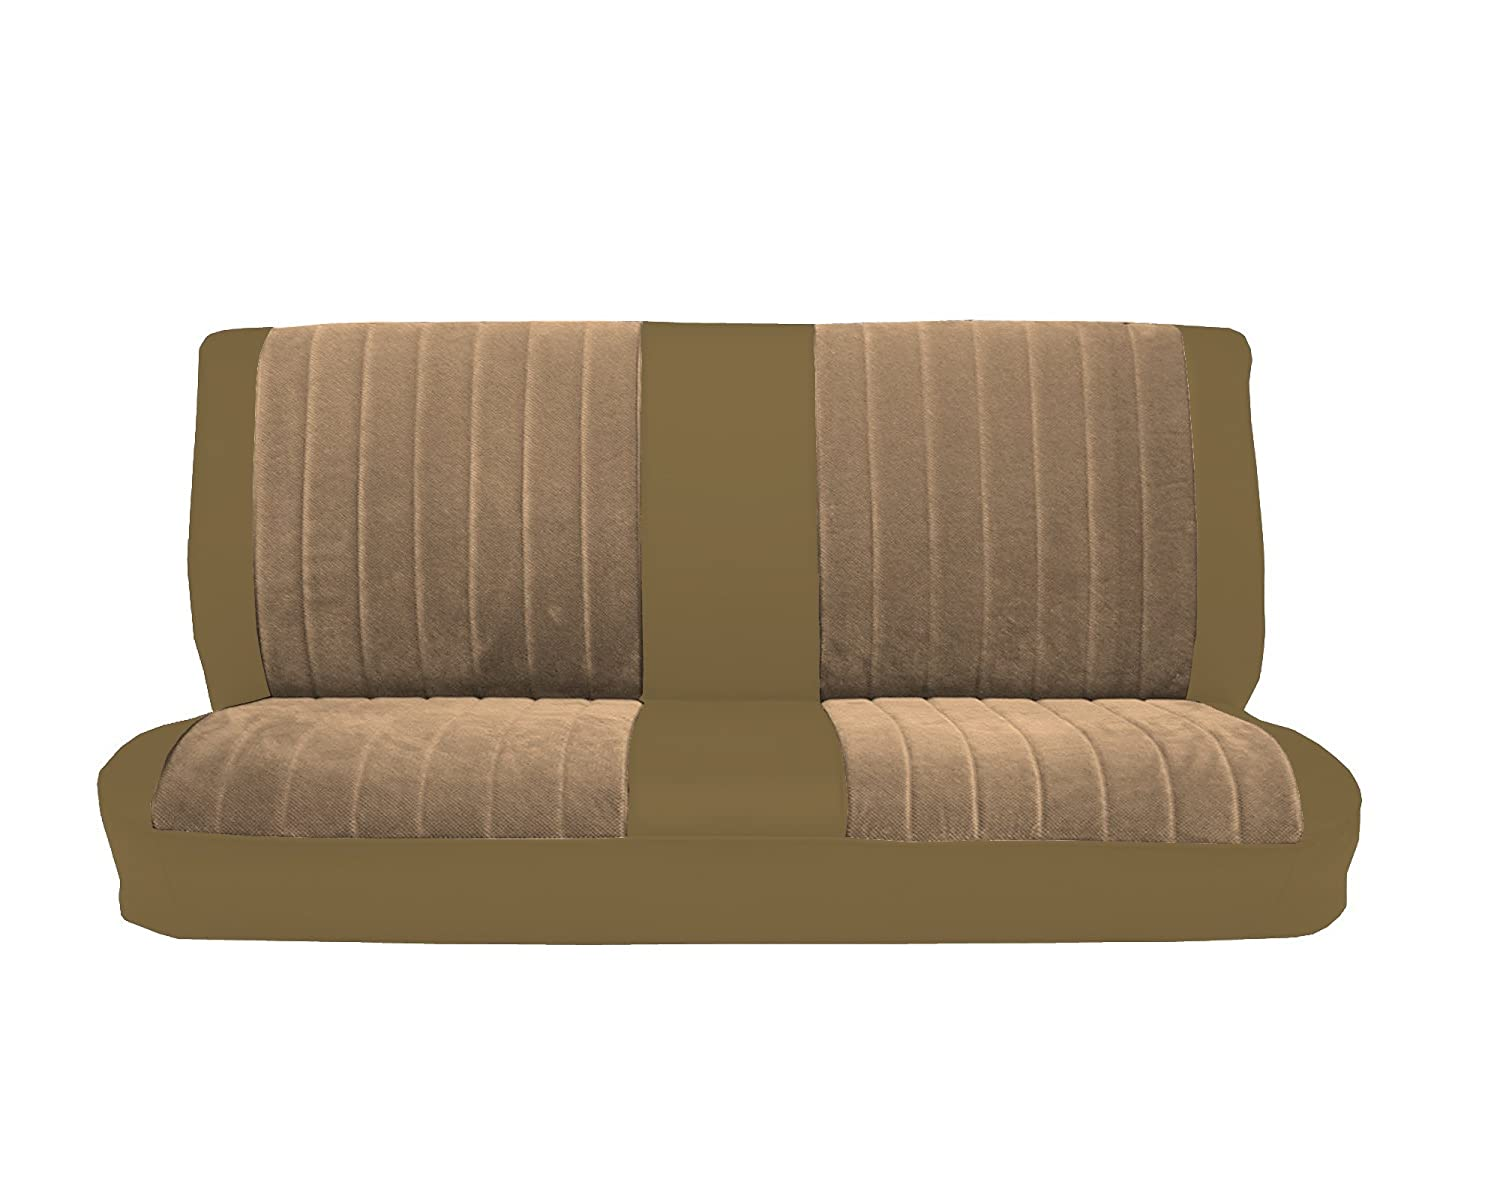 Acme U1001-014M Front Palomino Vinyl Bench Seat Upholstery with Sandstone Regal Velour Pleated Inserts